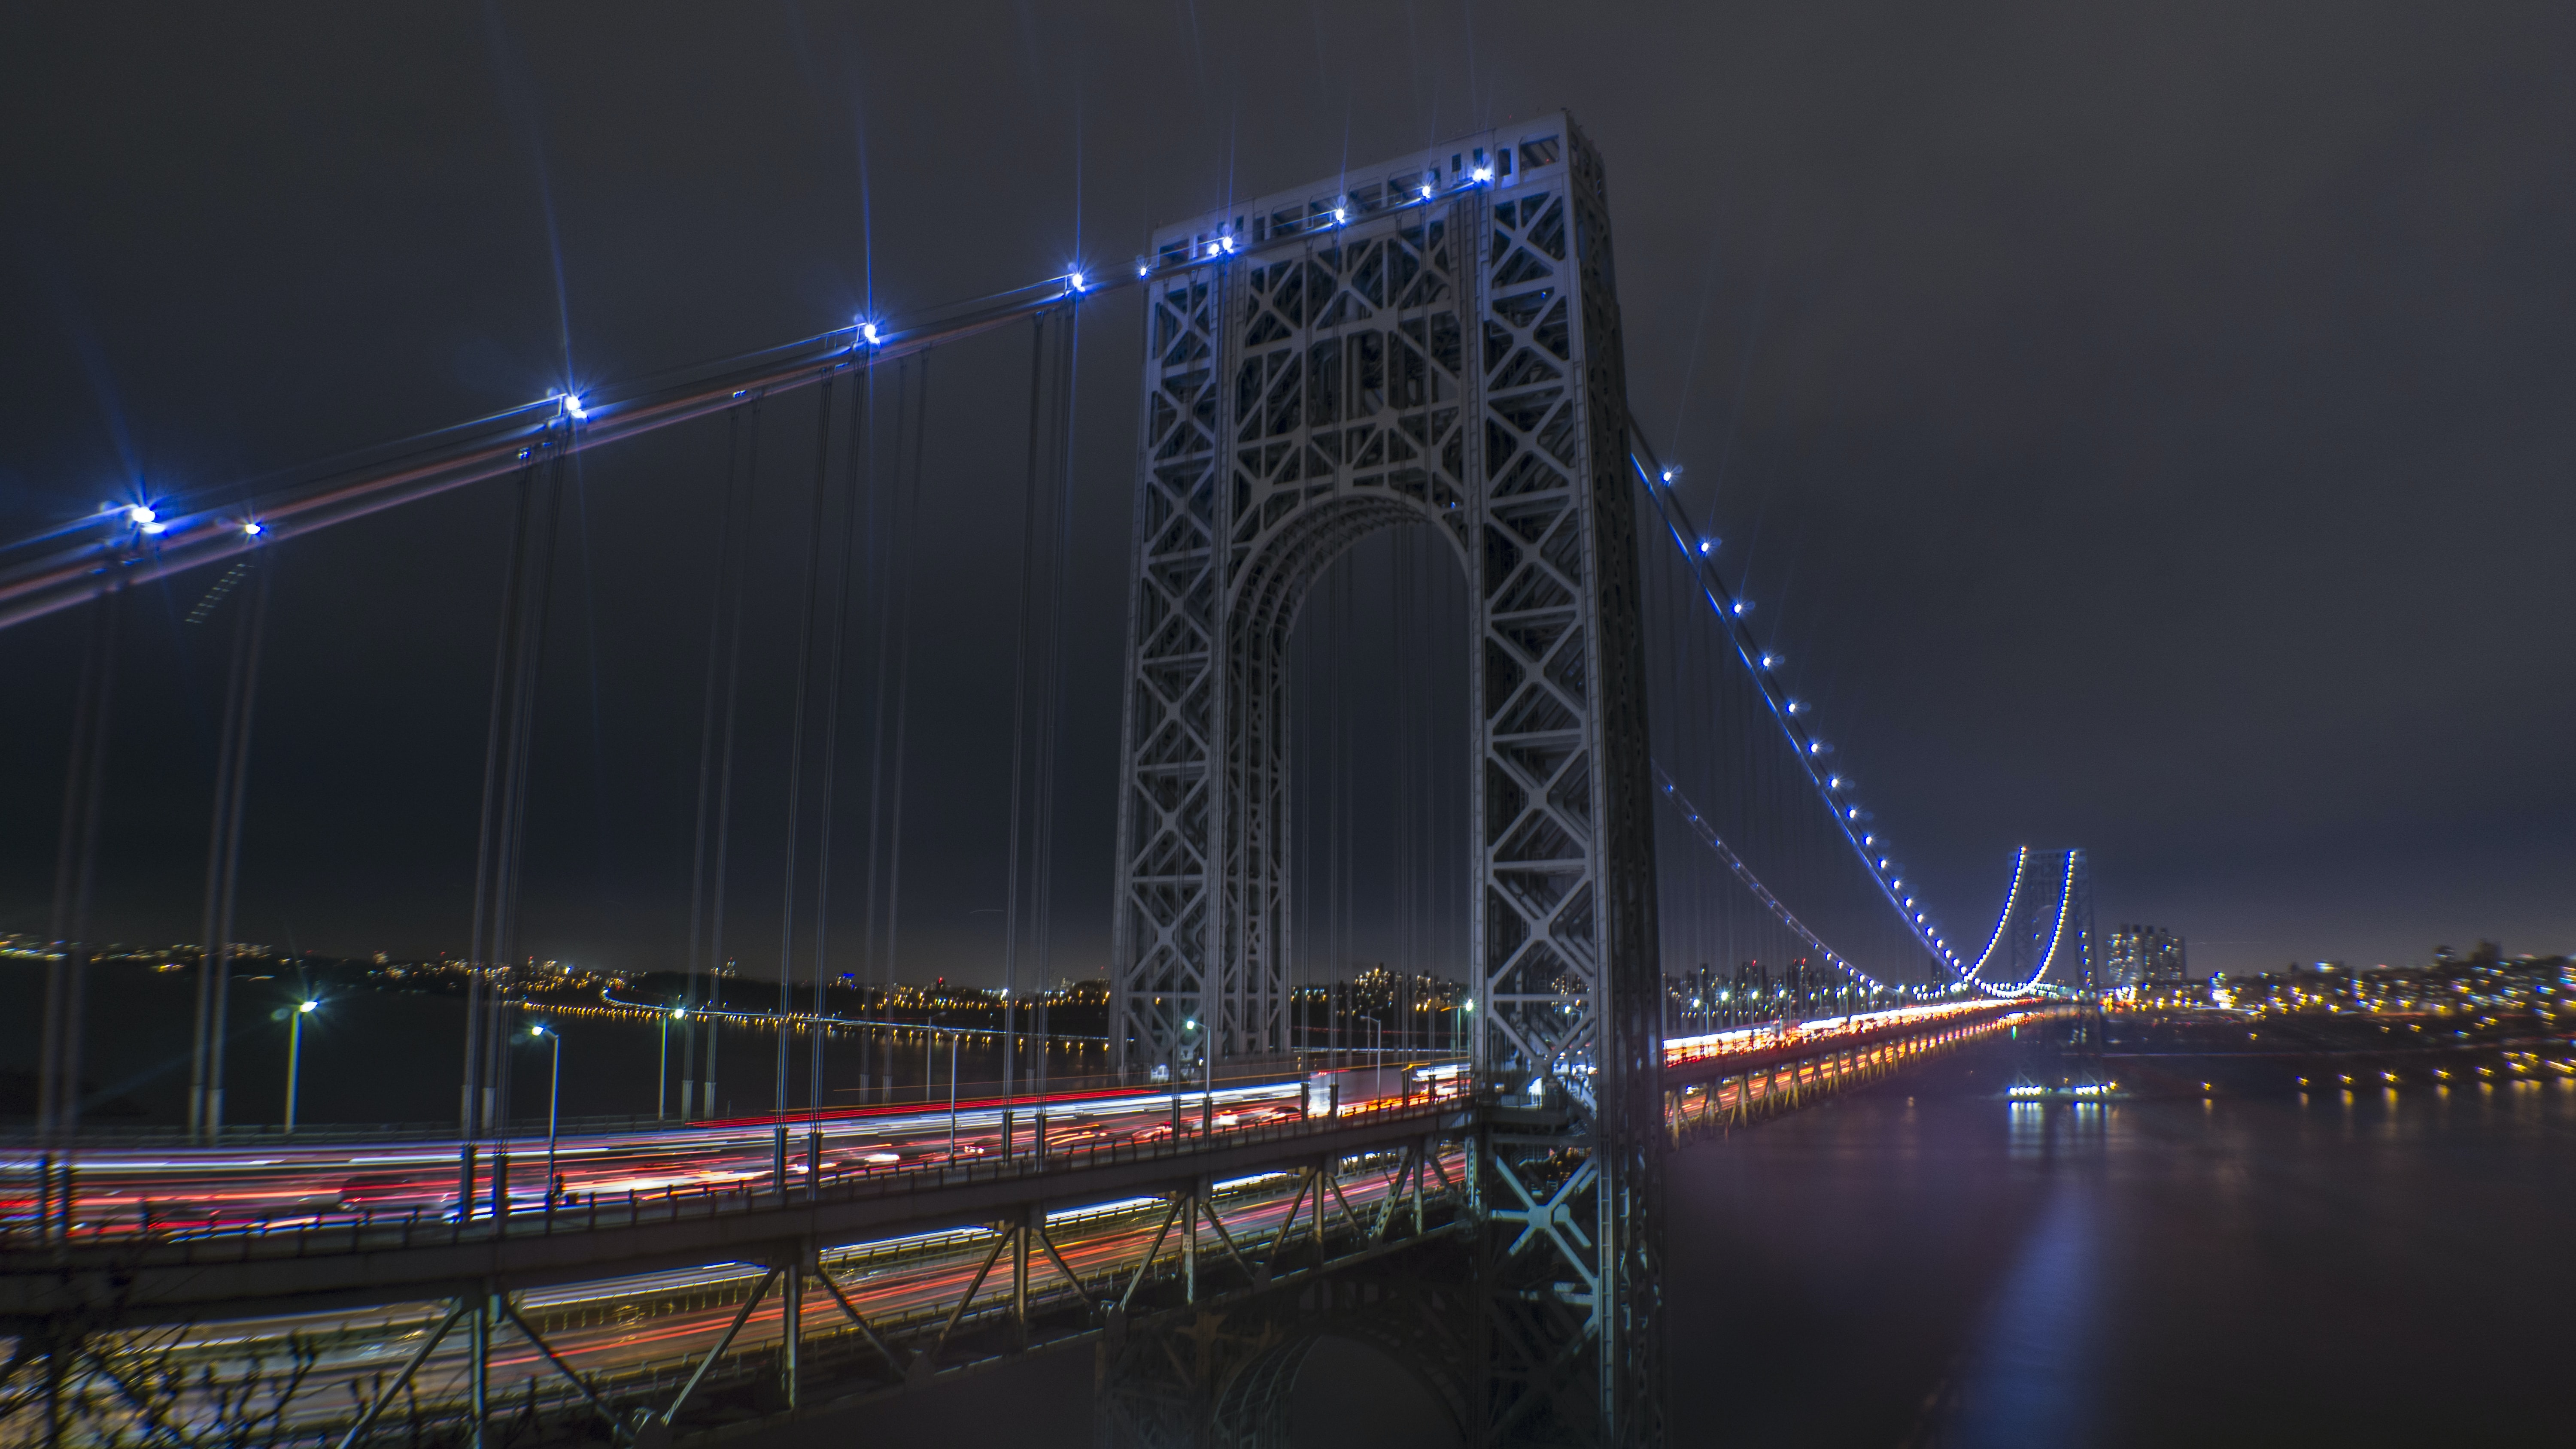 A close-up view of a bridge illuminated with blue lights, taken from the city's skyline